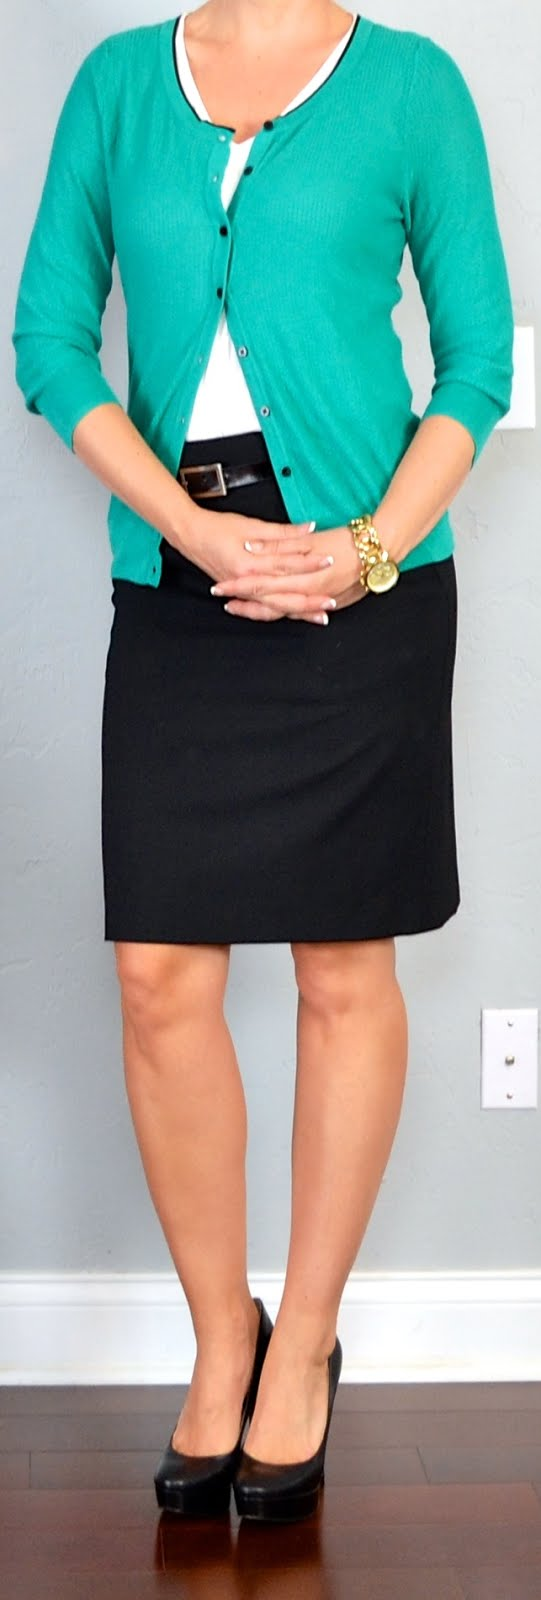 Outfit Posts outfit posts green cardigan black pencil skirt